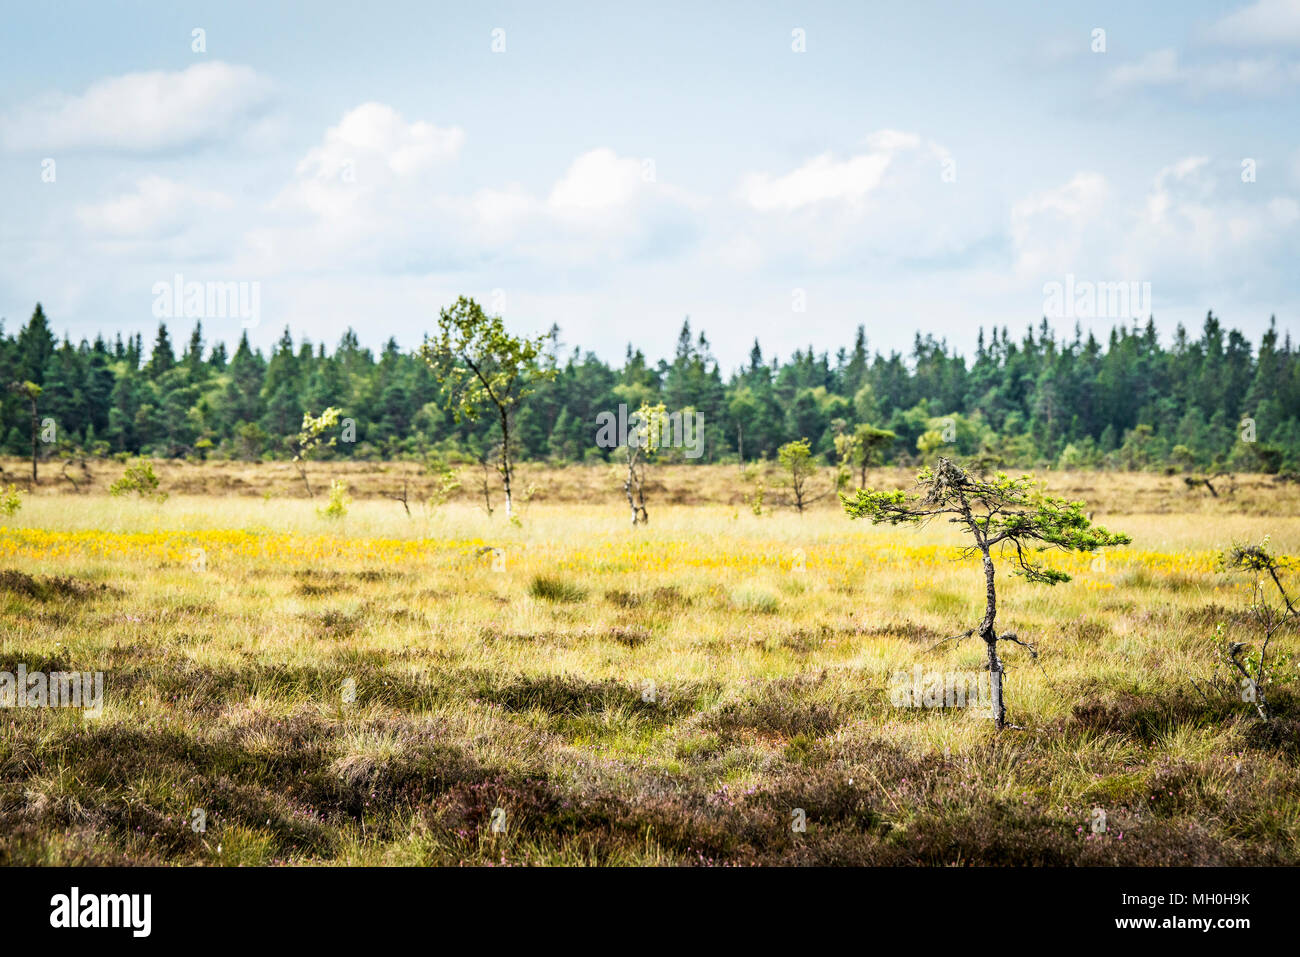 Small Pine Trees On A Dry Field With Yellow Flowers In The Summer